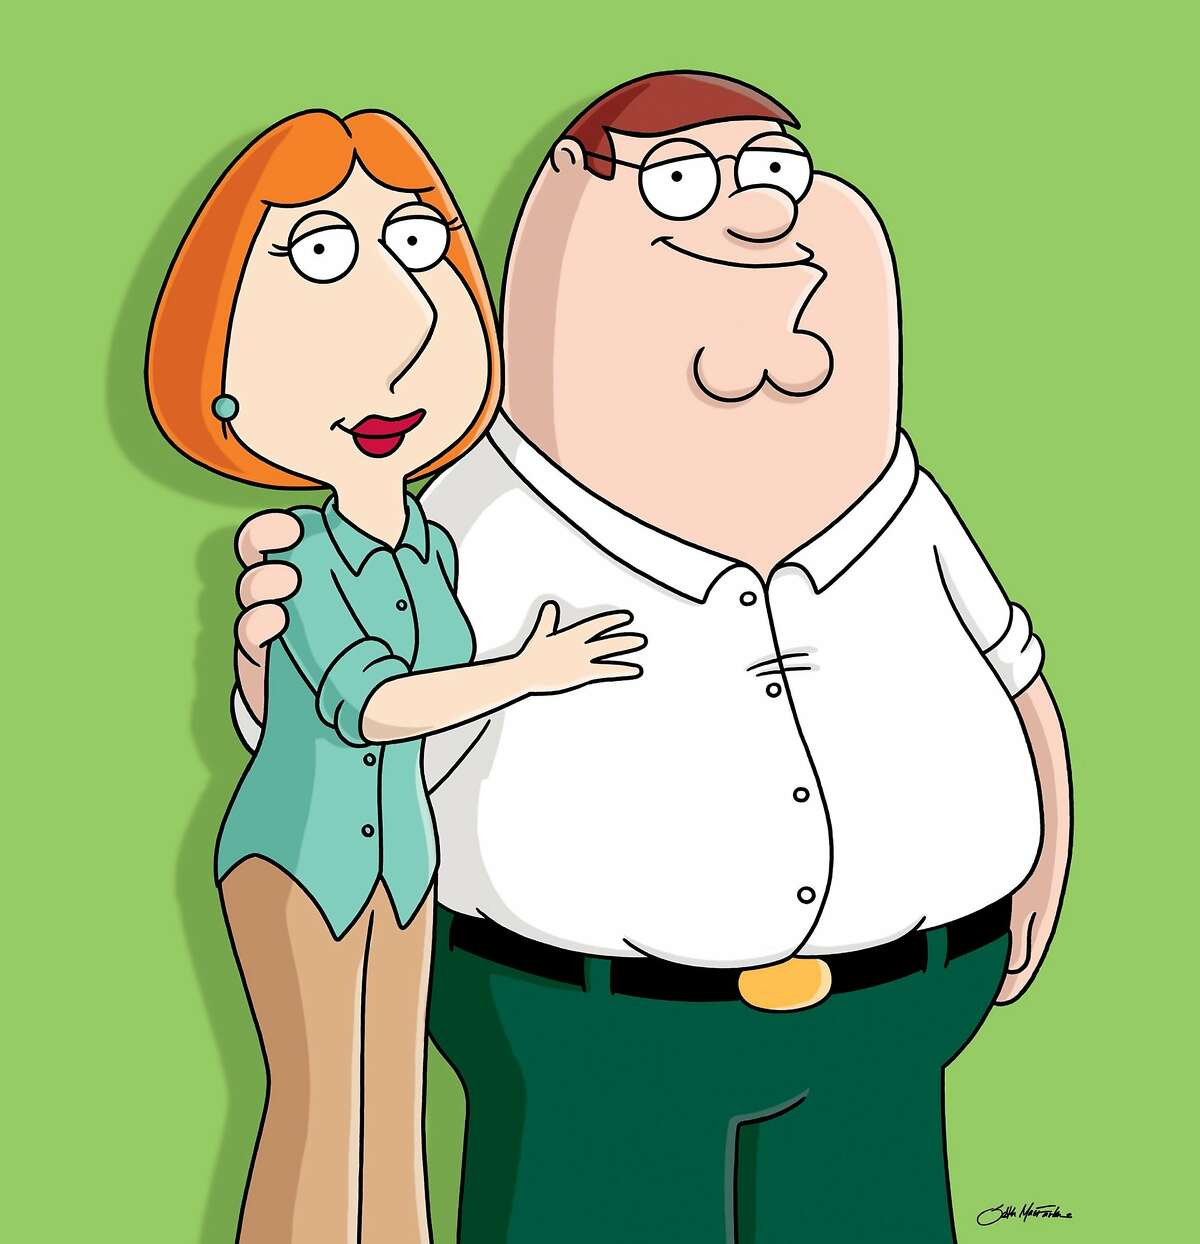 """In this image released by Fox Broadcasting, the characters of Lois and Peter Griffin from """"The Family Guy,"""" are shown. """"Family Guy"""" was canceled in 2001, but MacFarlane would get the last laugh when it was picked back up in 2005 and has produced new shows for Fox every year since, in addition to winning multiple Emmy Awards. The sitcom has drawn on MacFarland's home state in the past, picking on Bridgeport specifically. In 2010, it referenced the city as the worldwide leader in """"wild dogs and gas stations without pumps."""" Then-Mayor Bill Finch laughed it off saying """"we have to remember it's humor."""" MacFarlane has also created """"American Dad!"""" """"The Cleveland Show,"""" directed the movies """"Ted"""" and """"Ted 2"""" and hosted the Academy Awards in 2013. Earlier this year, he signed a $200 million deal with NBCUniversal."""